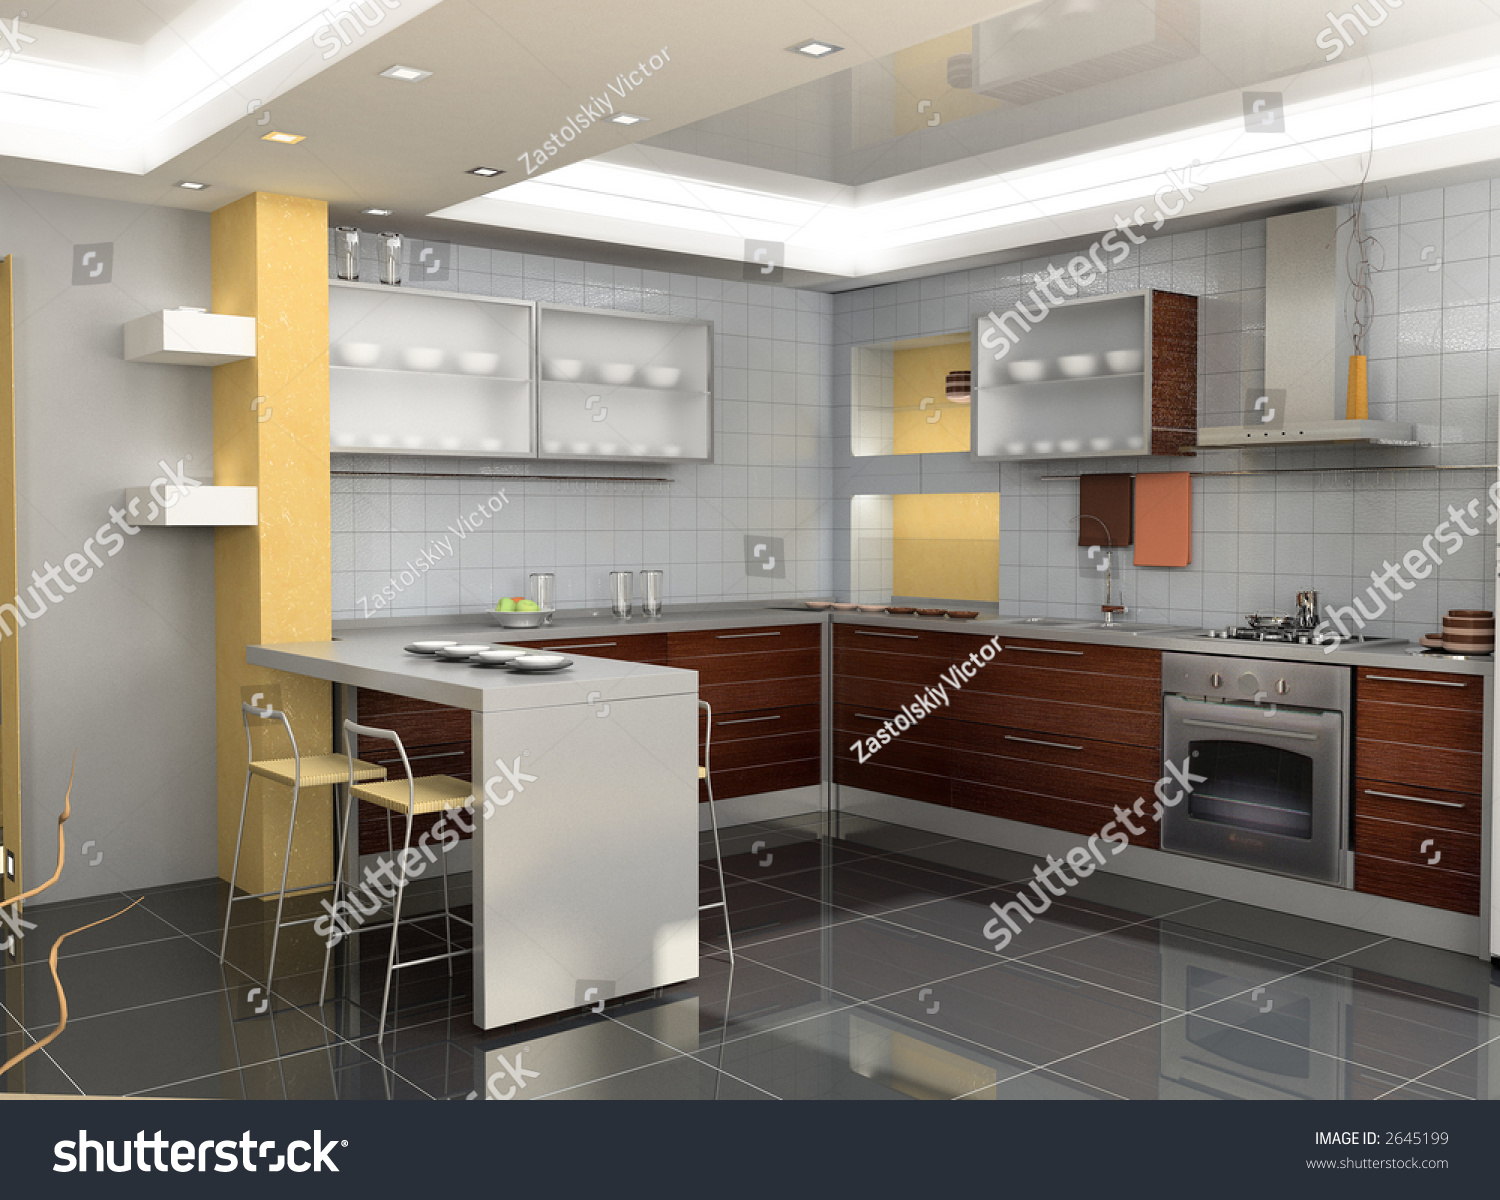 Modern kitchen interior design 3d rendering stock photo for Official interior design